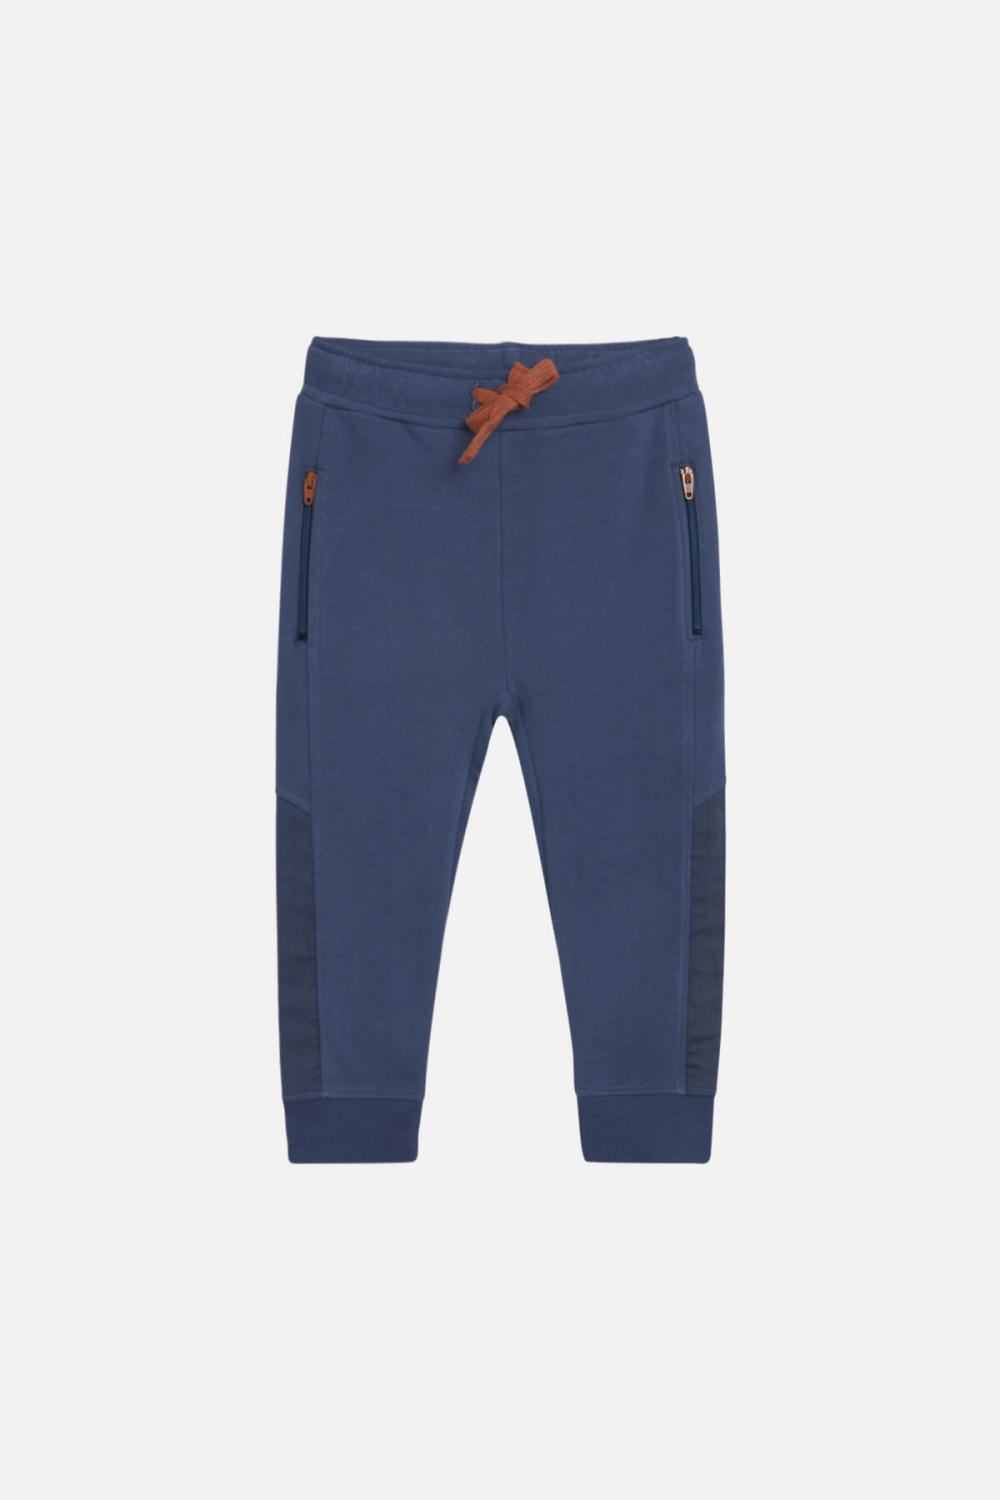 HUST&CLAIRE SWEATPANTS 49114576 BLUE